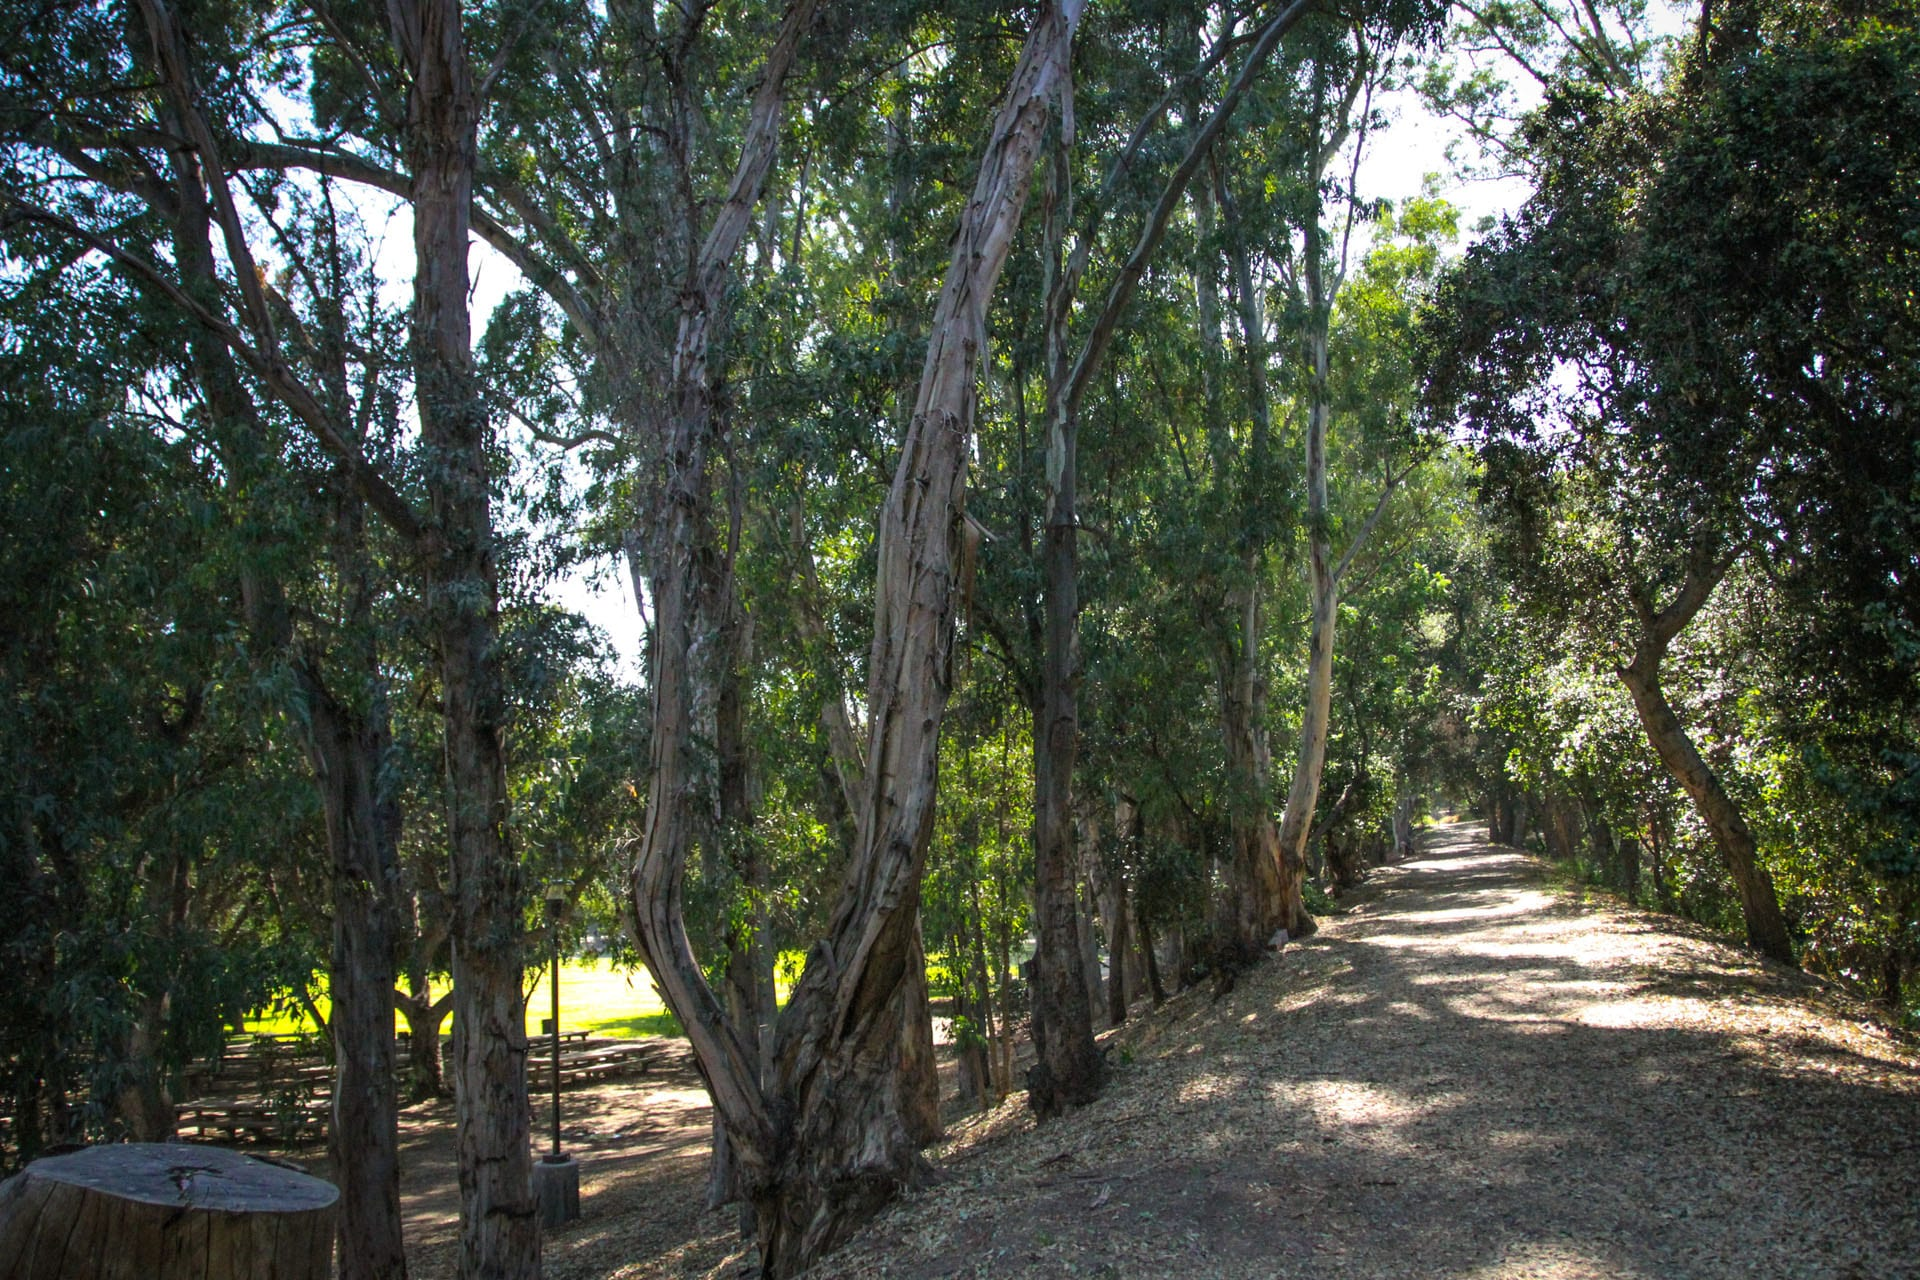 Trail with trees running along either side